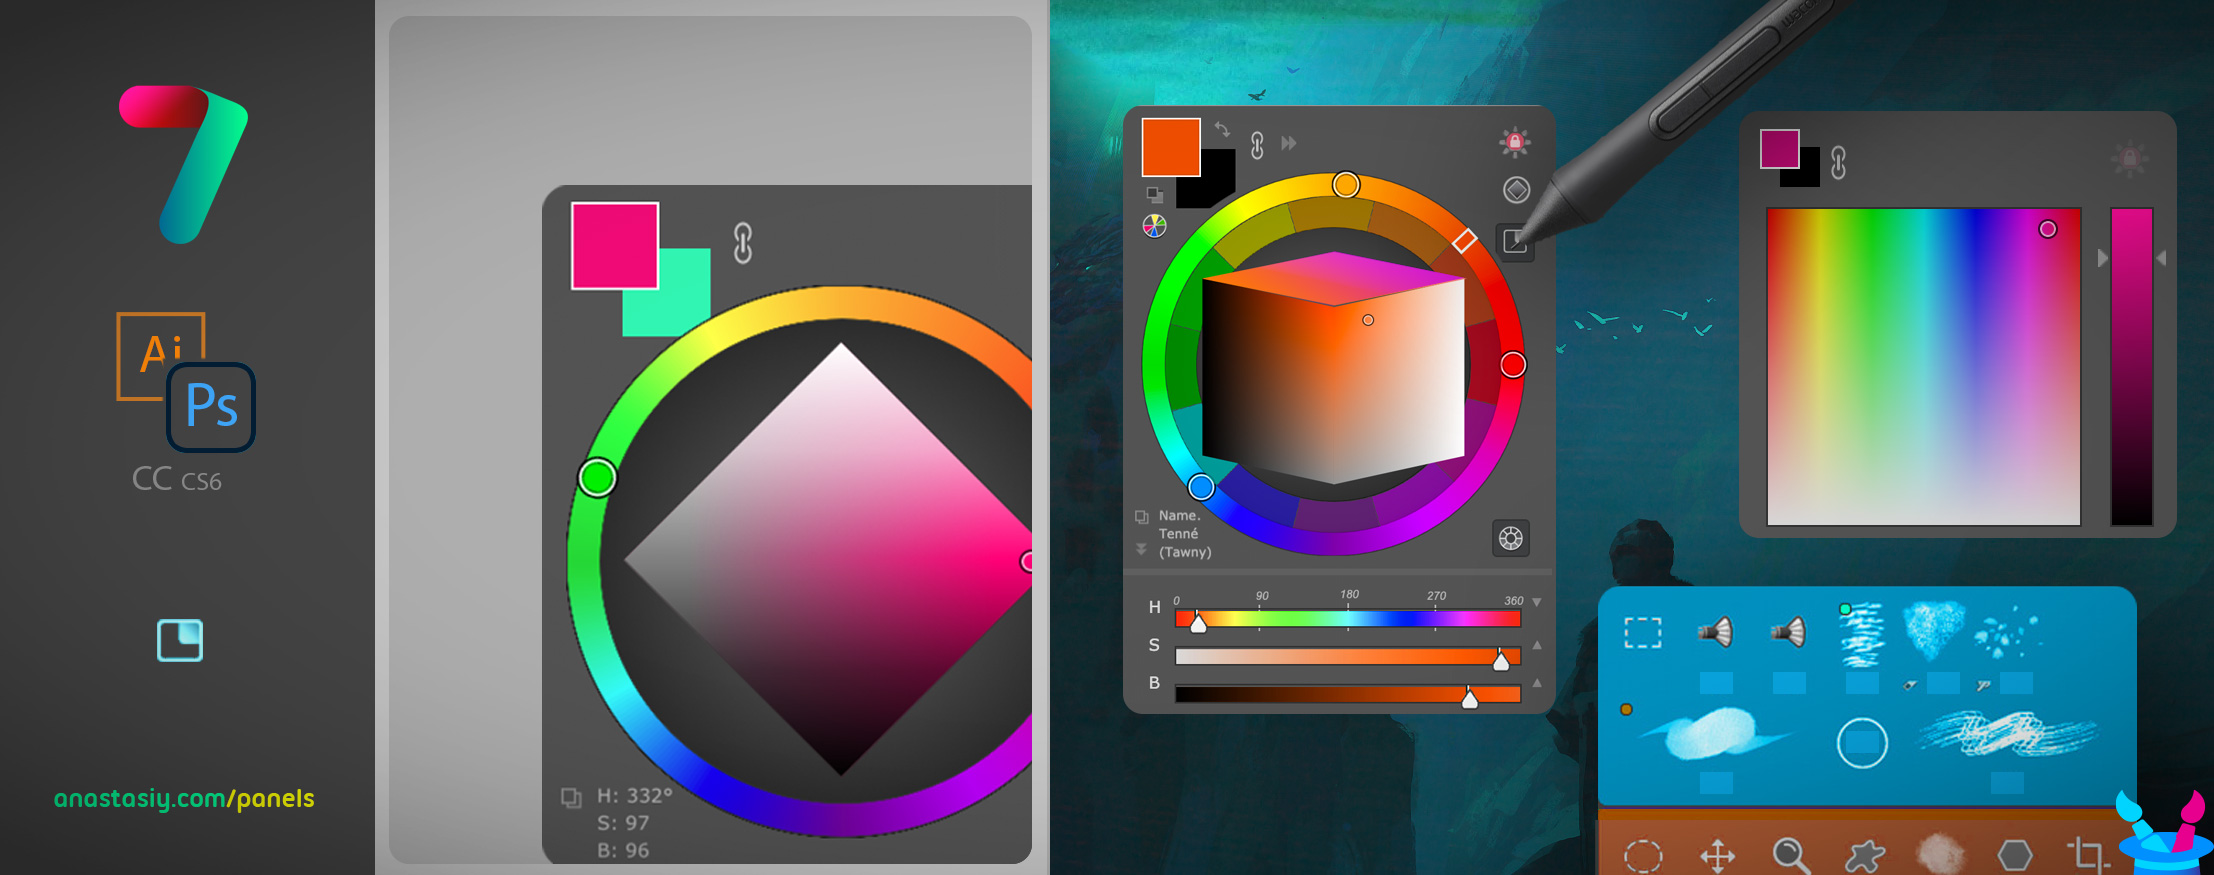 MagicPicker color wheel in HUD mode in Photoshop